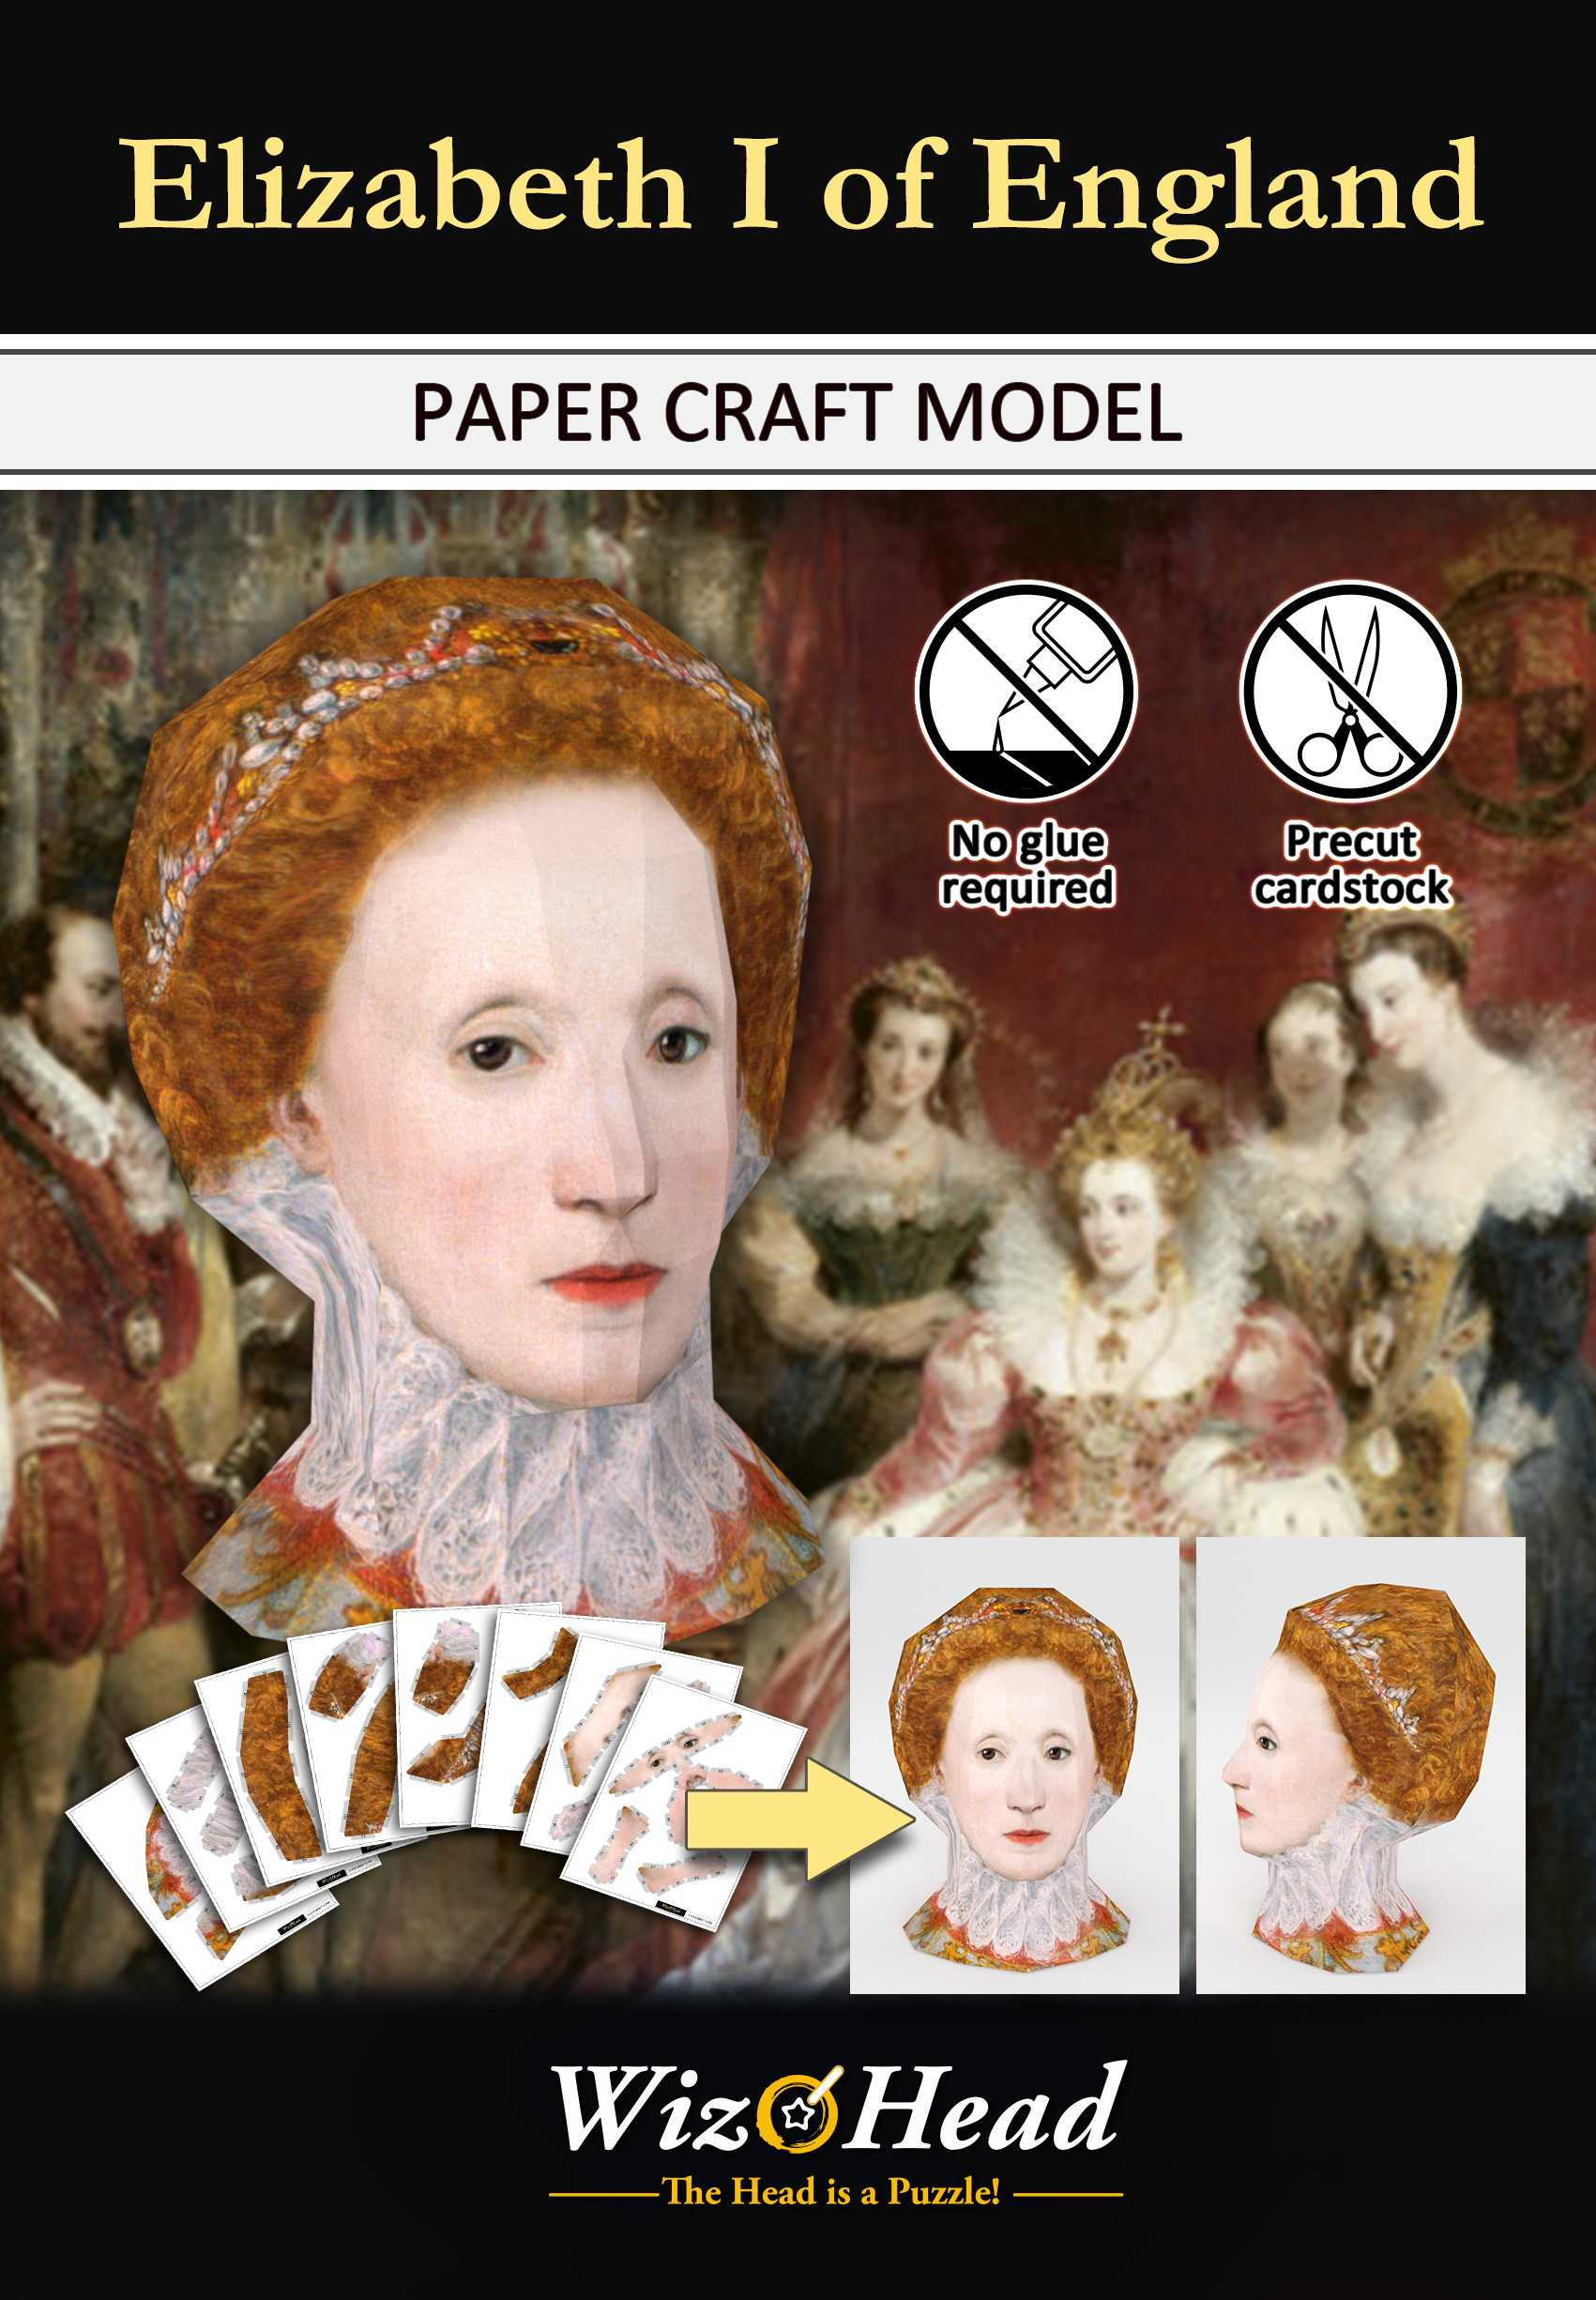 Elizabeth I of England (Full Size)